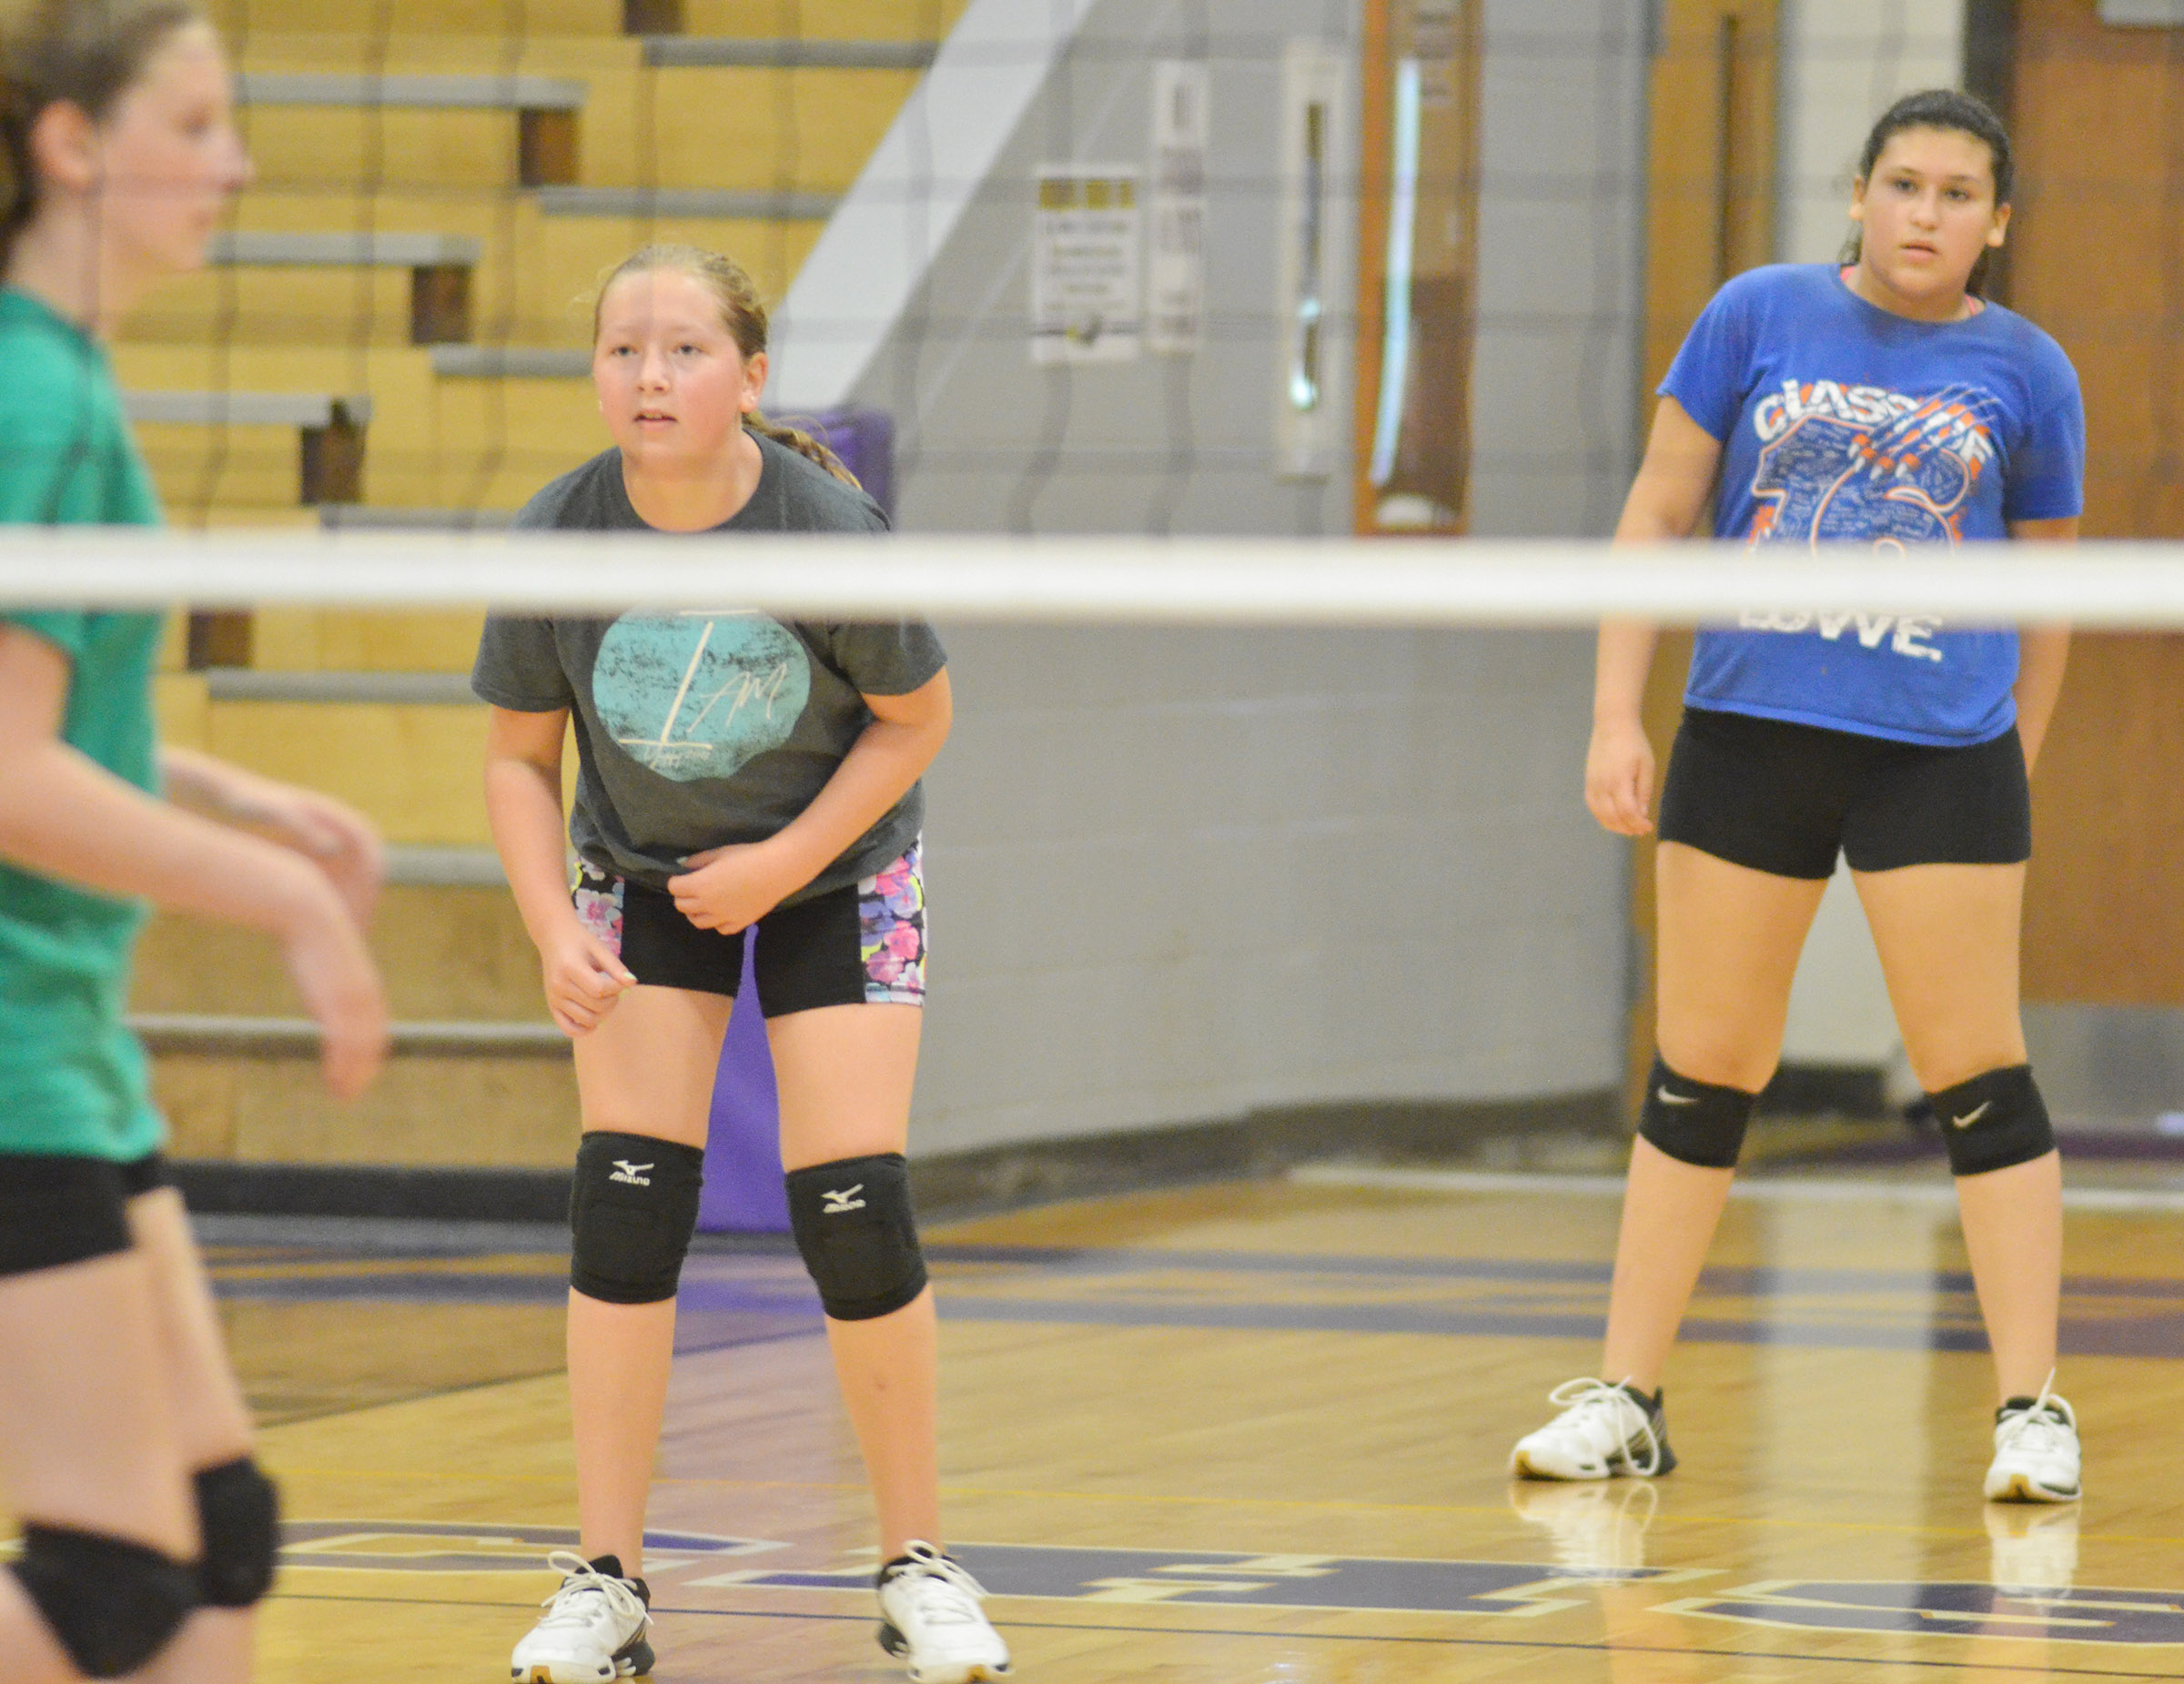 CMS sixth-grader Ava Hughes watches the ball.